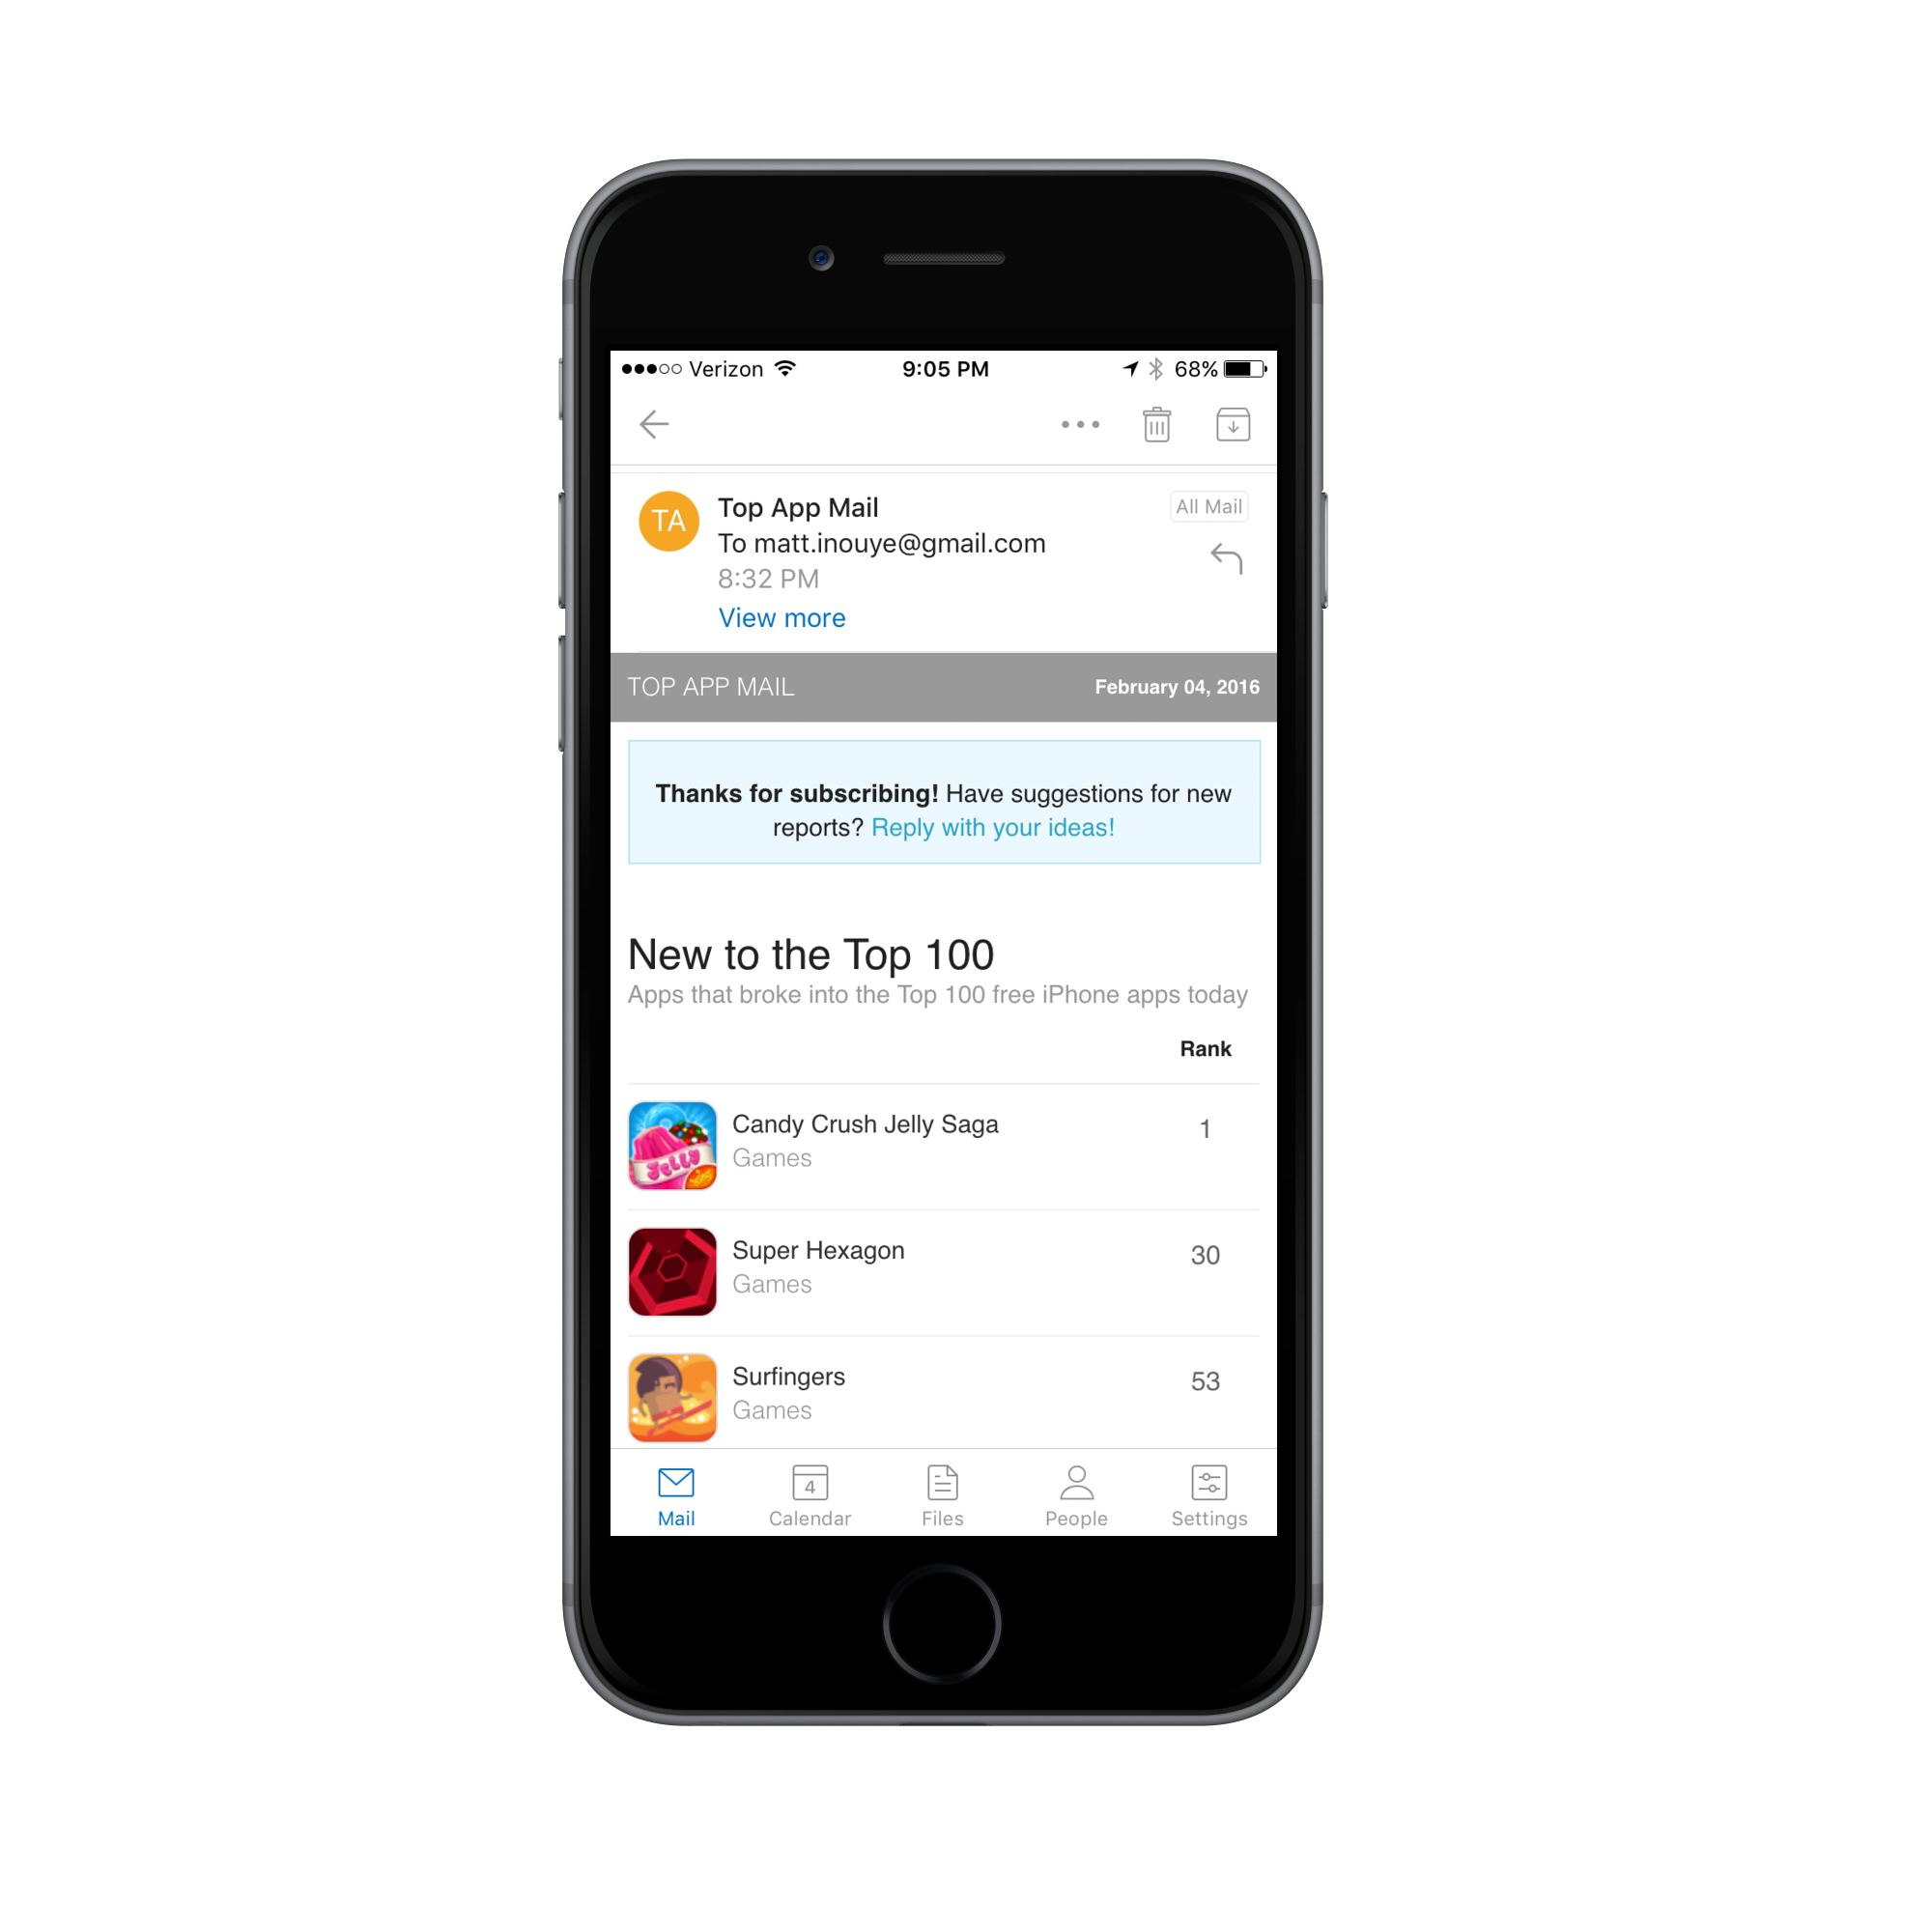 Top App Mail - A daily email of trending iOS apps